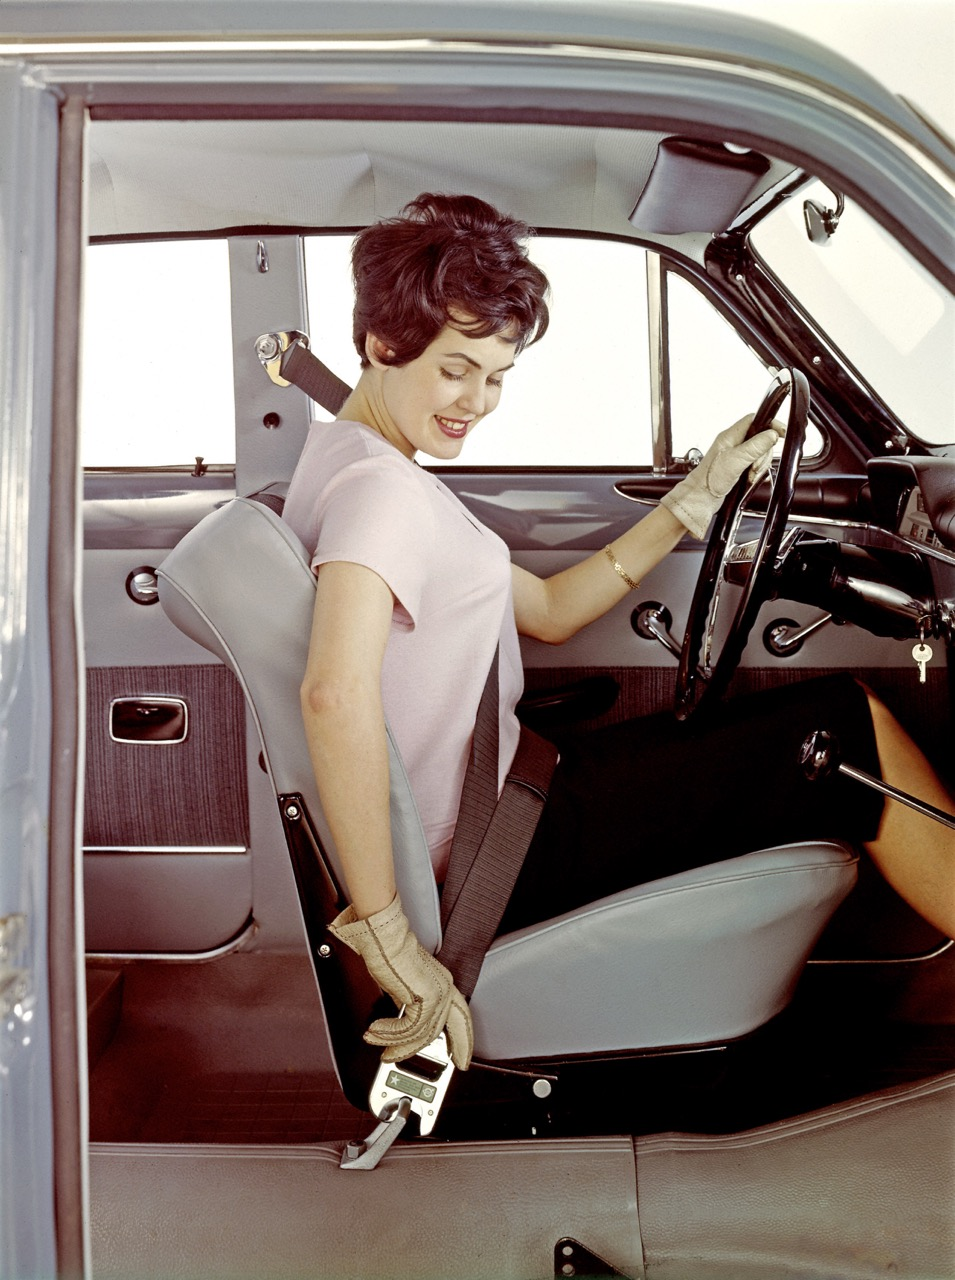 Amazon was first car with standard three-point belts